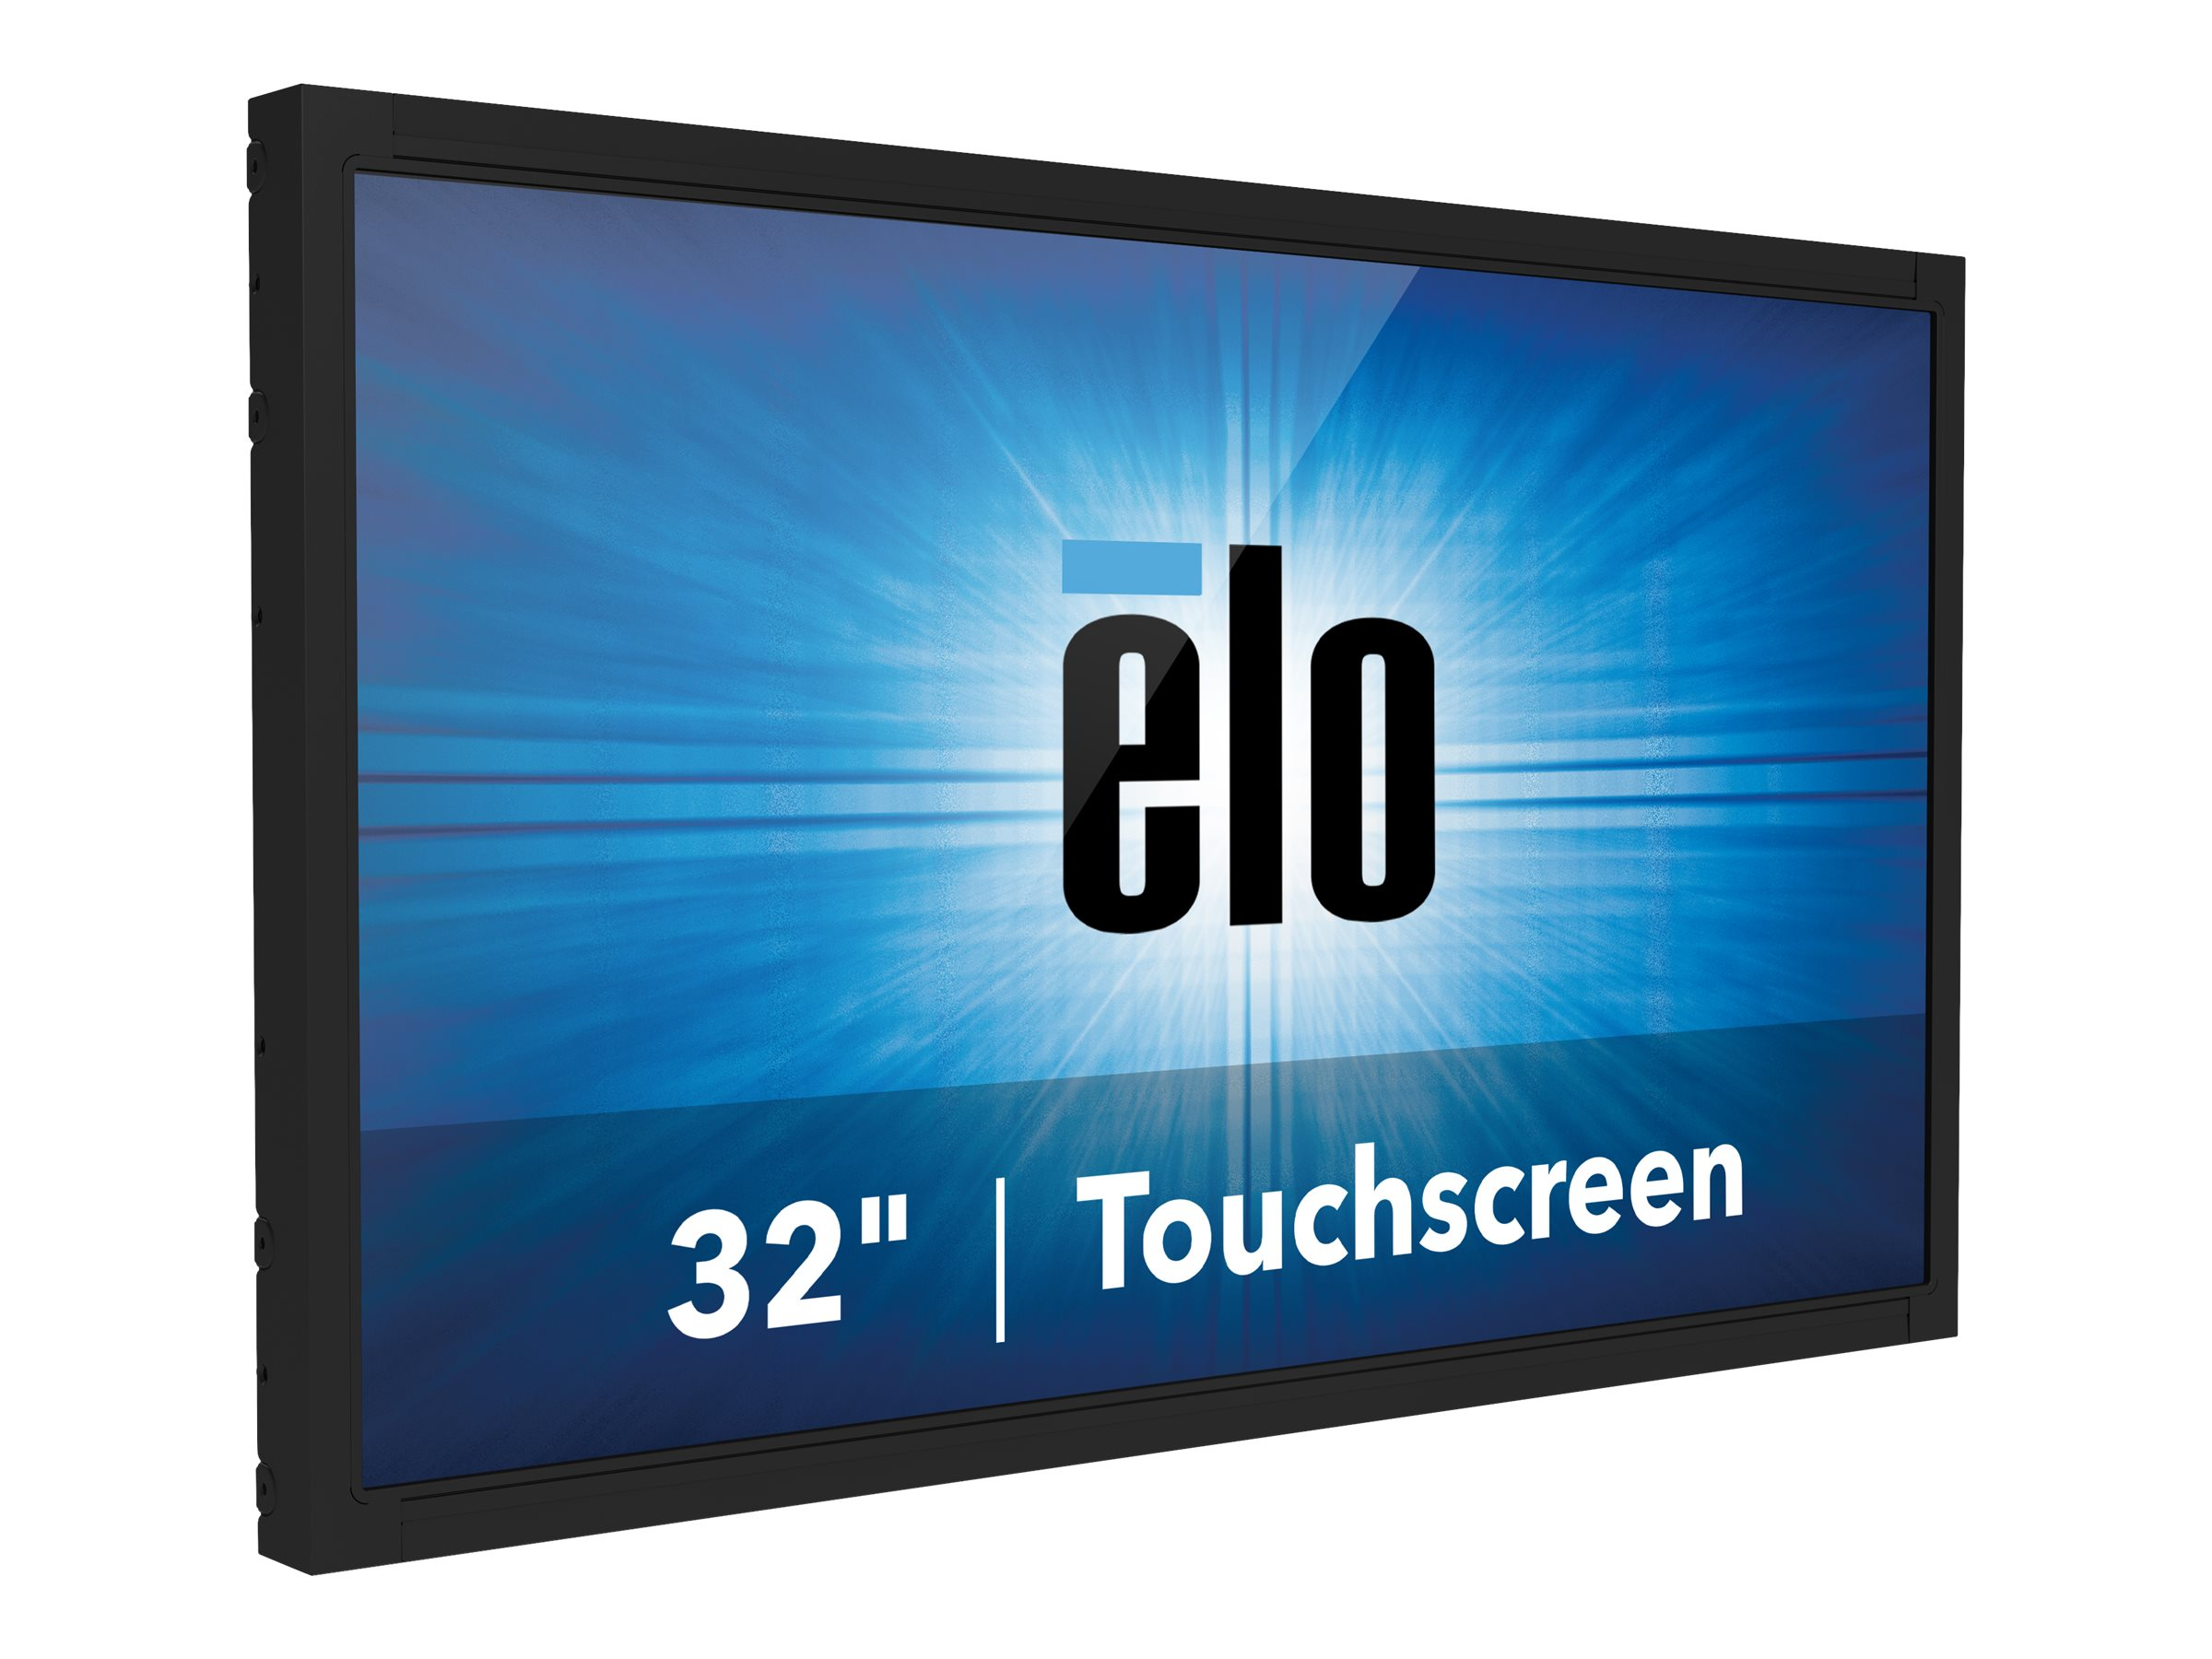 "Elo 3243L Projected Capacitive - Écran LED - 32"" (31.5"" visualisable) - cadre ouvert - écran tactile - 1920 x 1080 Full HD (1080p) - 500 cd/m² - 3000:1 - 8 ms - HDMI, VGA - noir"